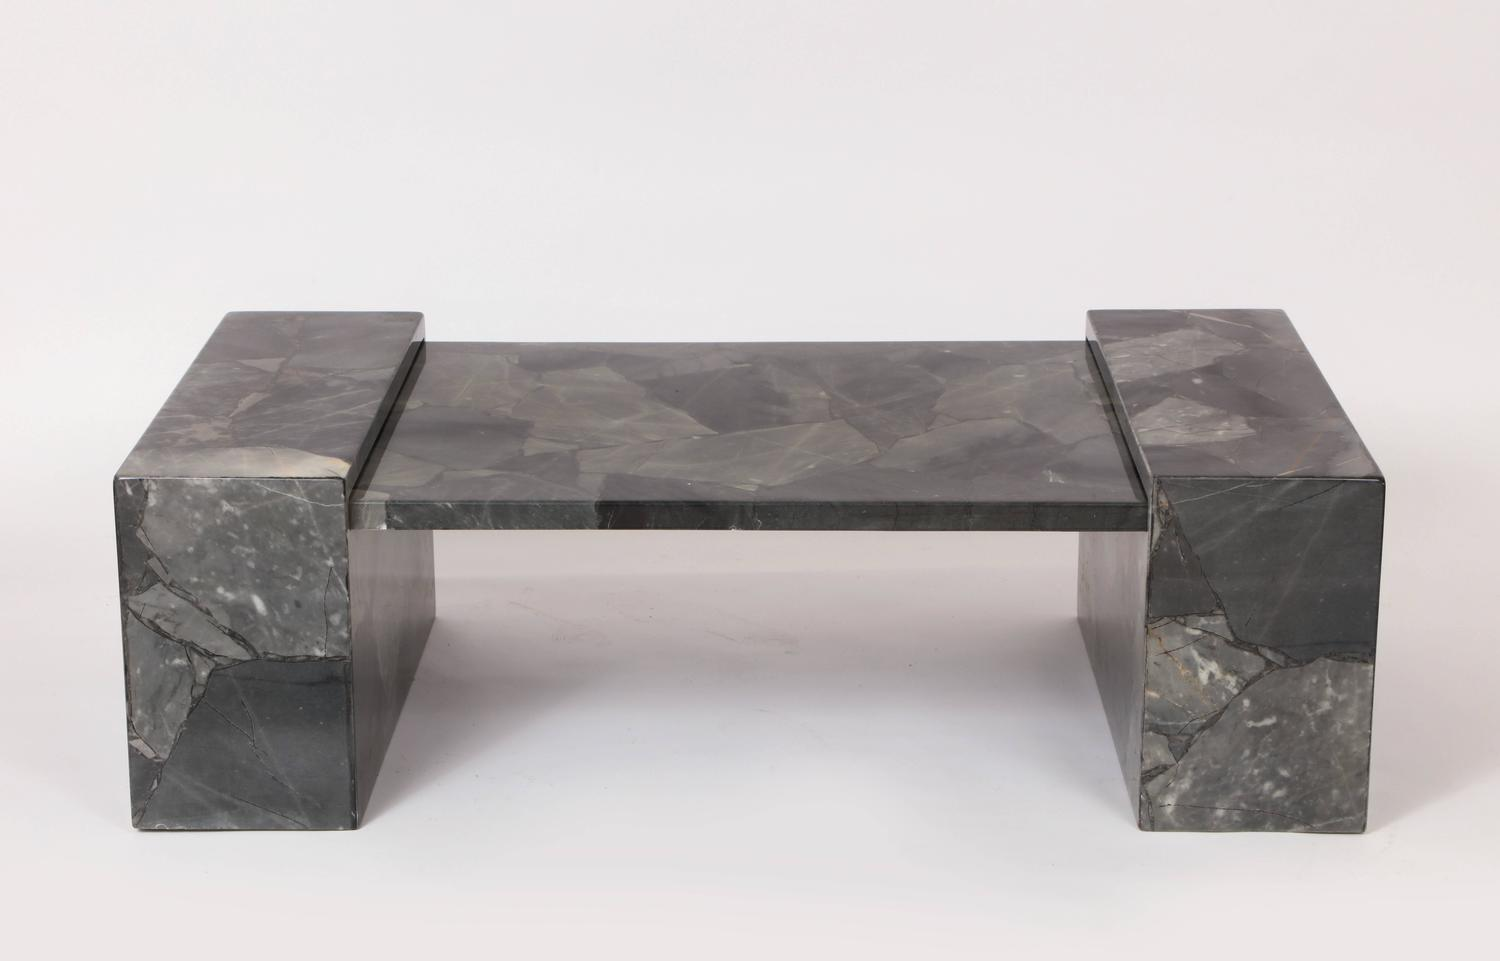 Muller faux marble stone coffee table hand painted lacquer grey mexico 1970 for sale at 1stdibs Granite coffee table